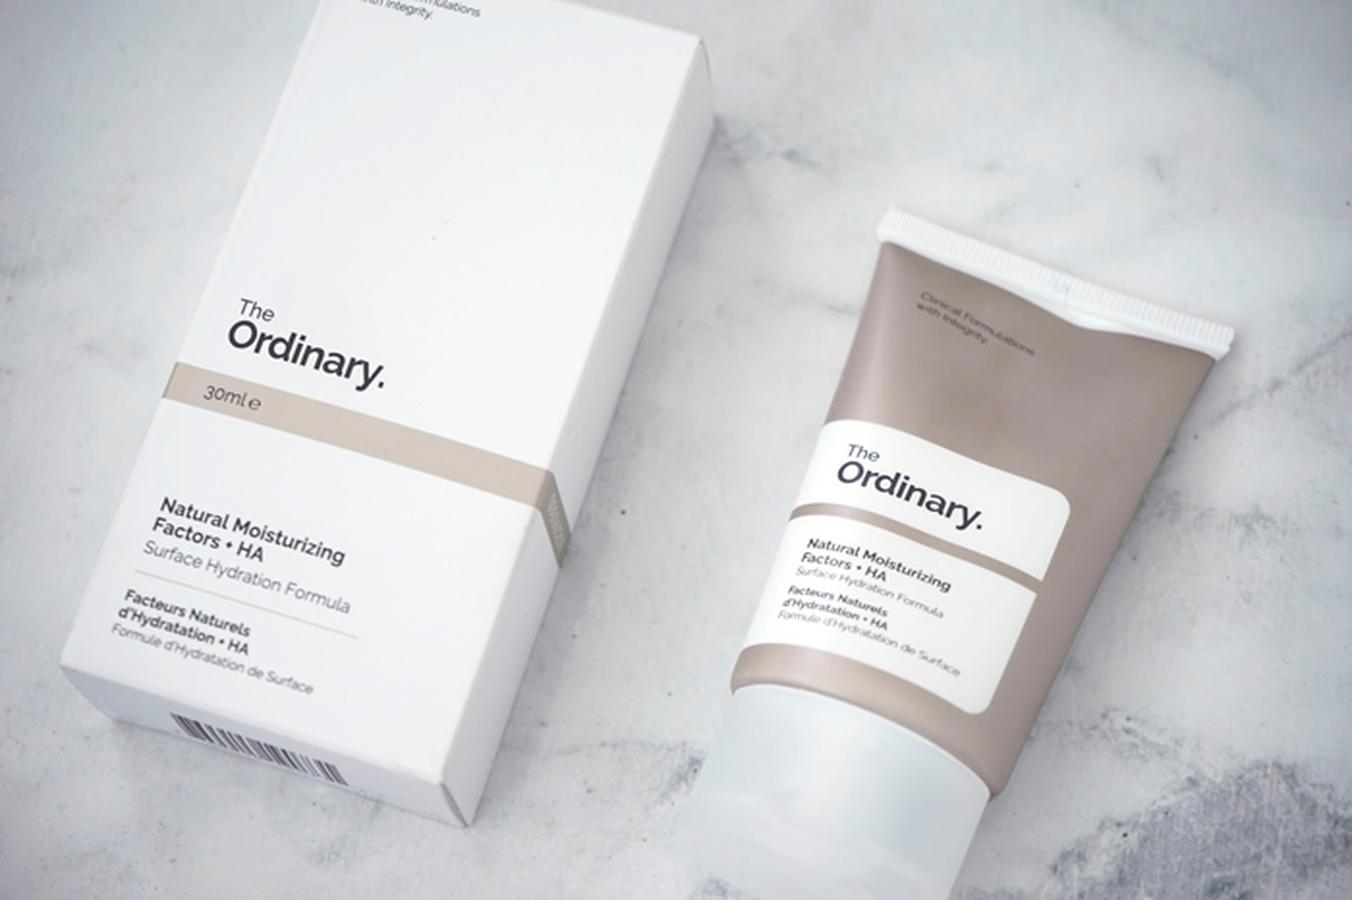 Kem Dưỡng Ẩm The Ordinary Natural Moisturising Factors HA